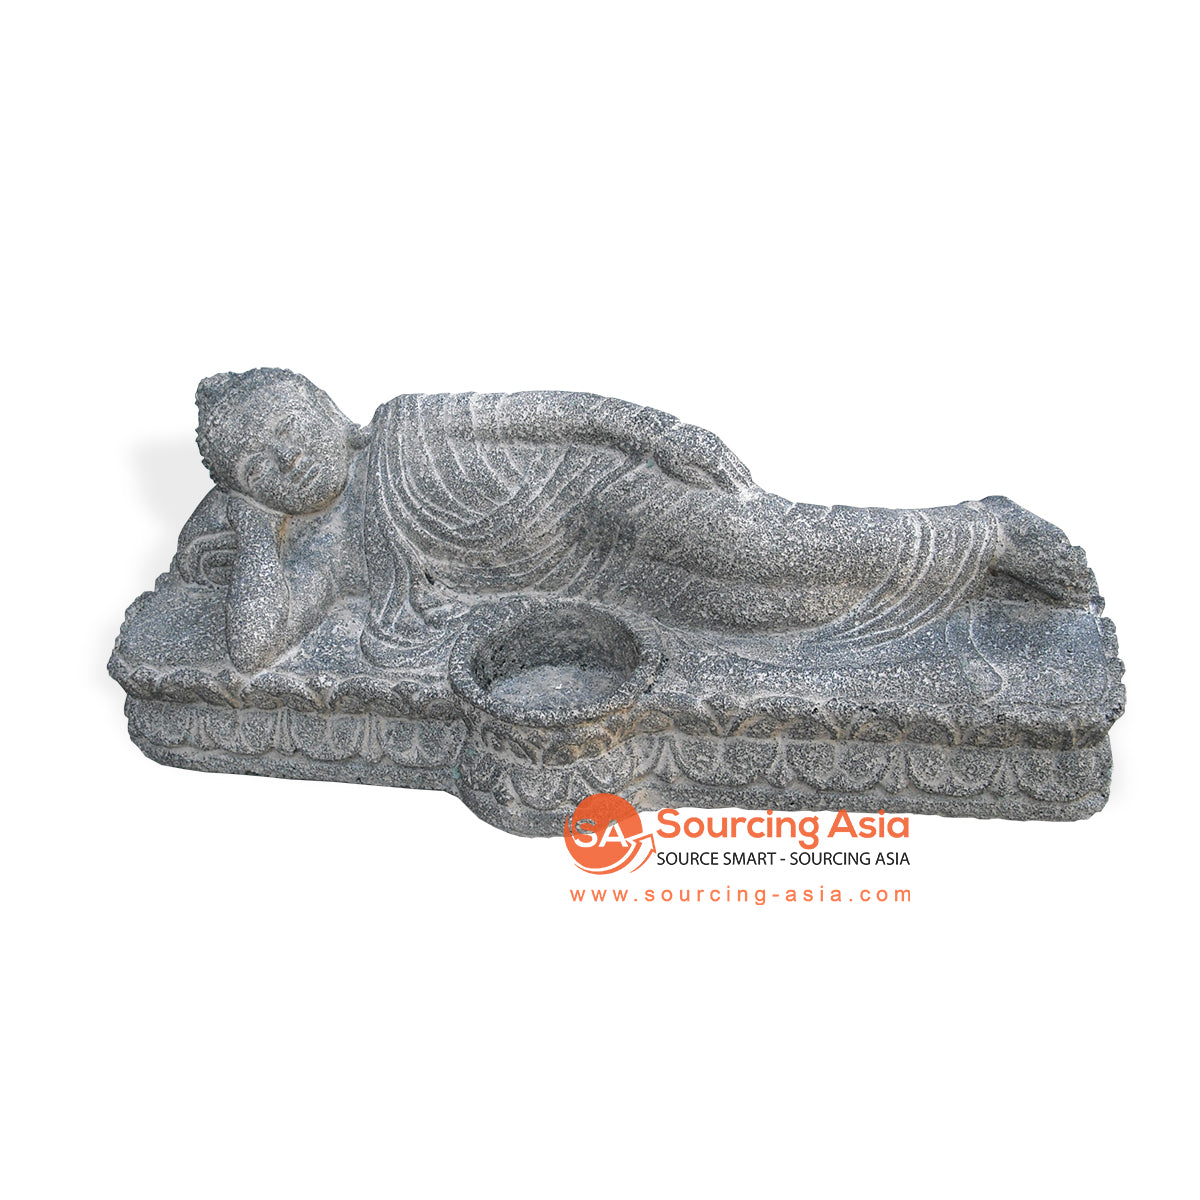 MHB090 BUDDHA STATUE WITH CANDLE HOLDER